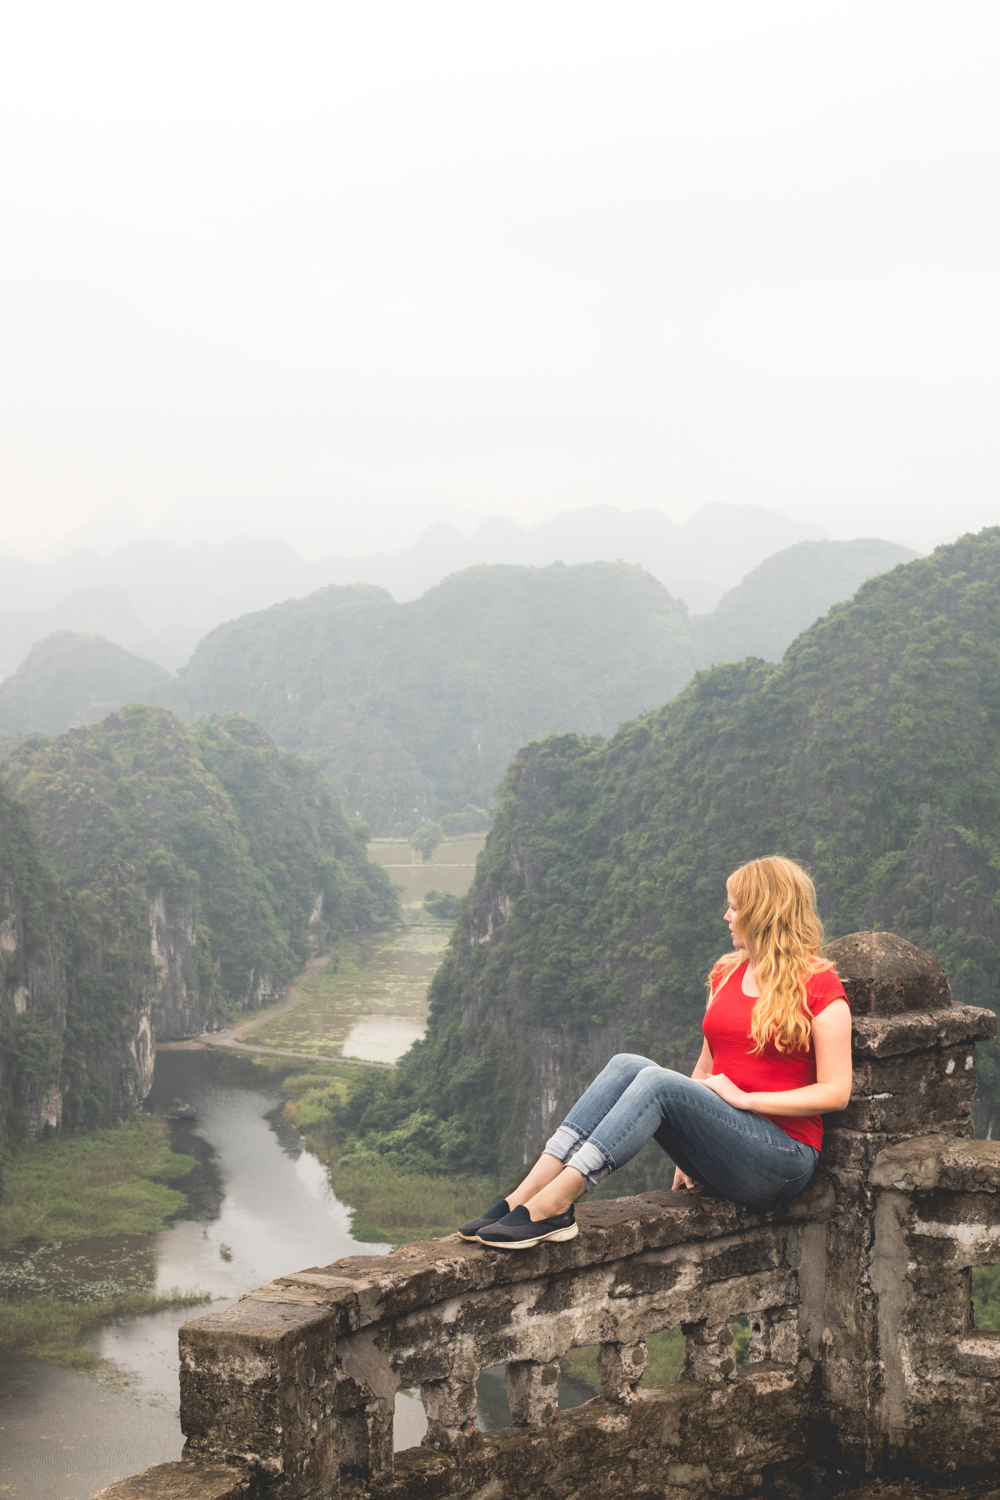 Instagram Worthy Places in Vietnam - Mua Caves